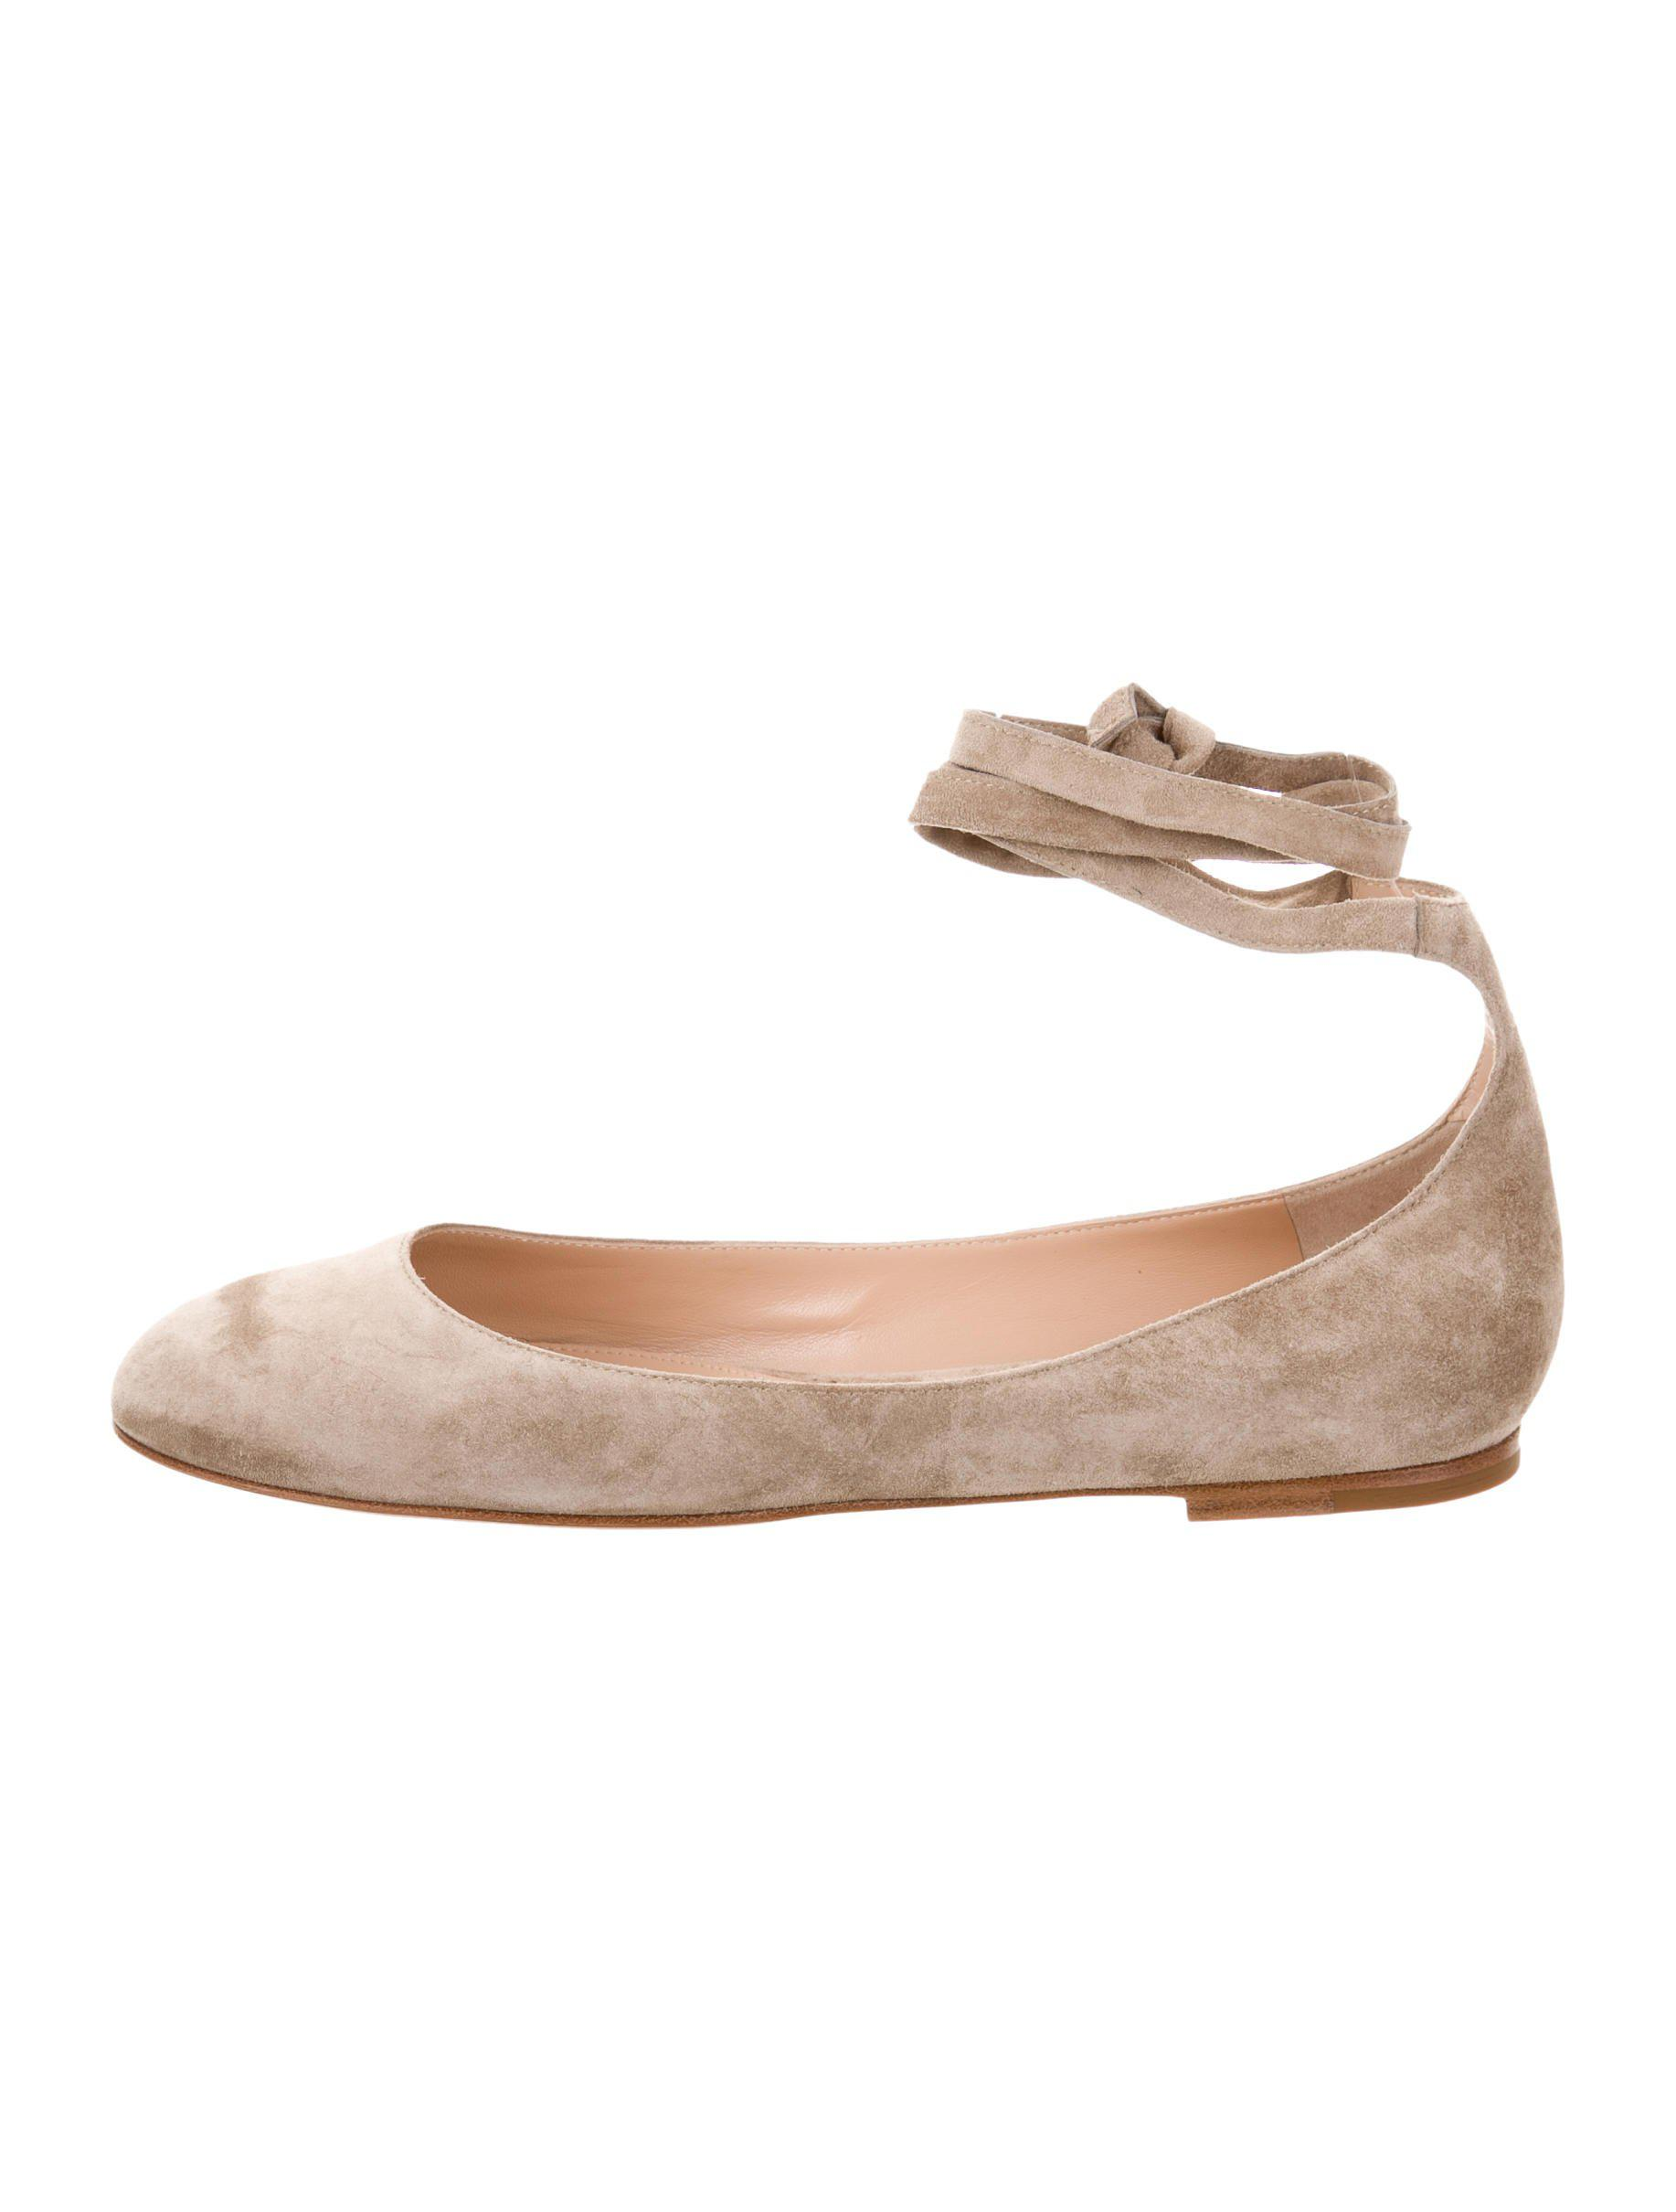 38c4af0e133a Lyst - Gianvito Rossi Carla Suede Flats W  Tags Beige in Natural